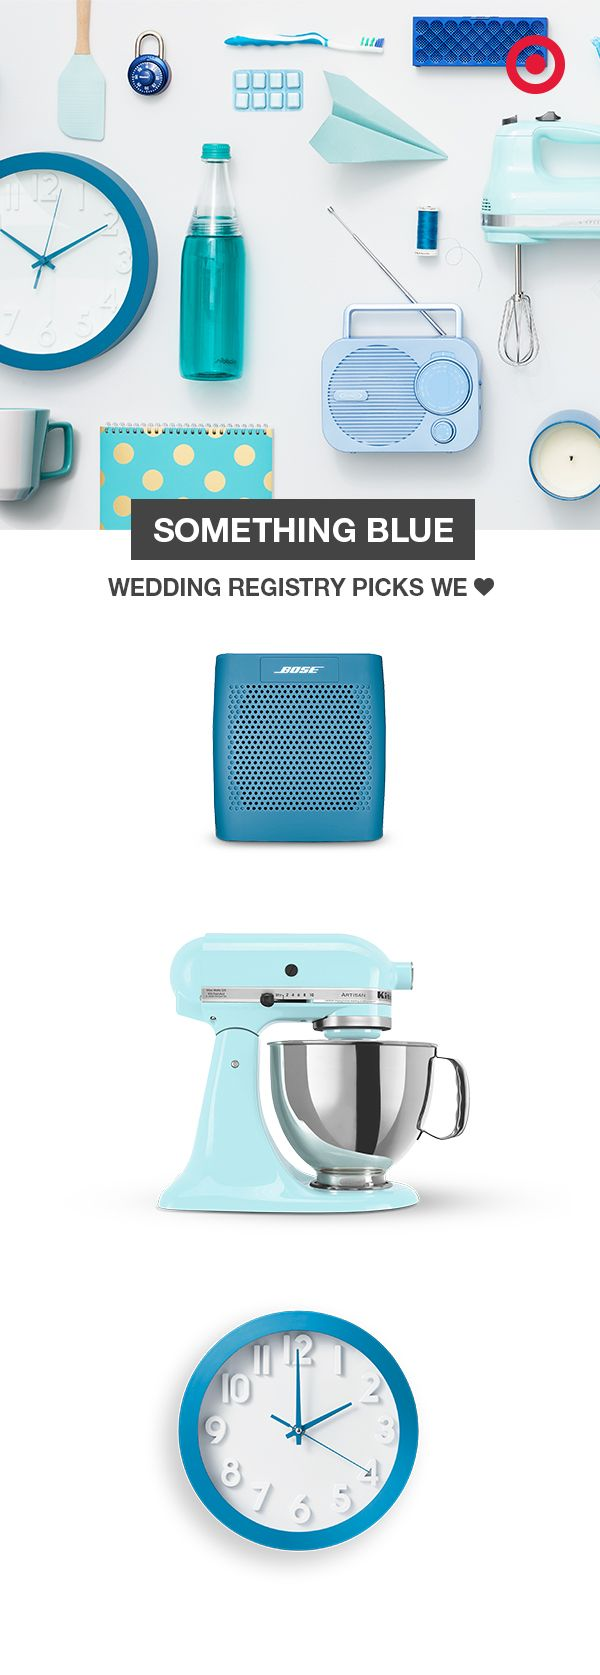 """Something blue"" isn't just for your wedding day. Add your favorite shades of blue to your wedding registry with must-haves like wireless speakers, a KitchenAid stand mixer, wall clocks and radios. Besides, blue is a super easy color to decorate with, and it creates a clean and calm atmosphere."